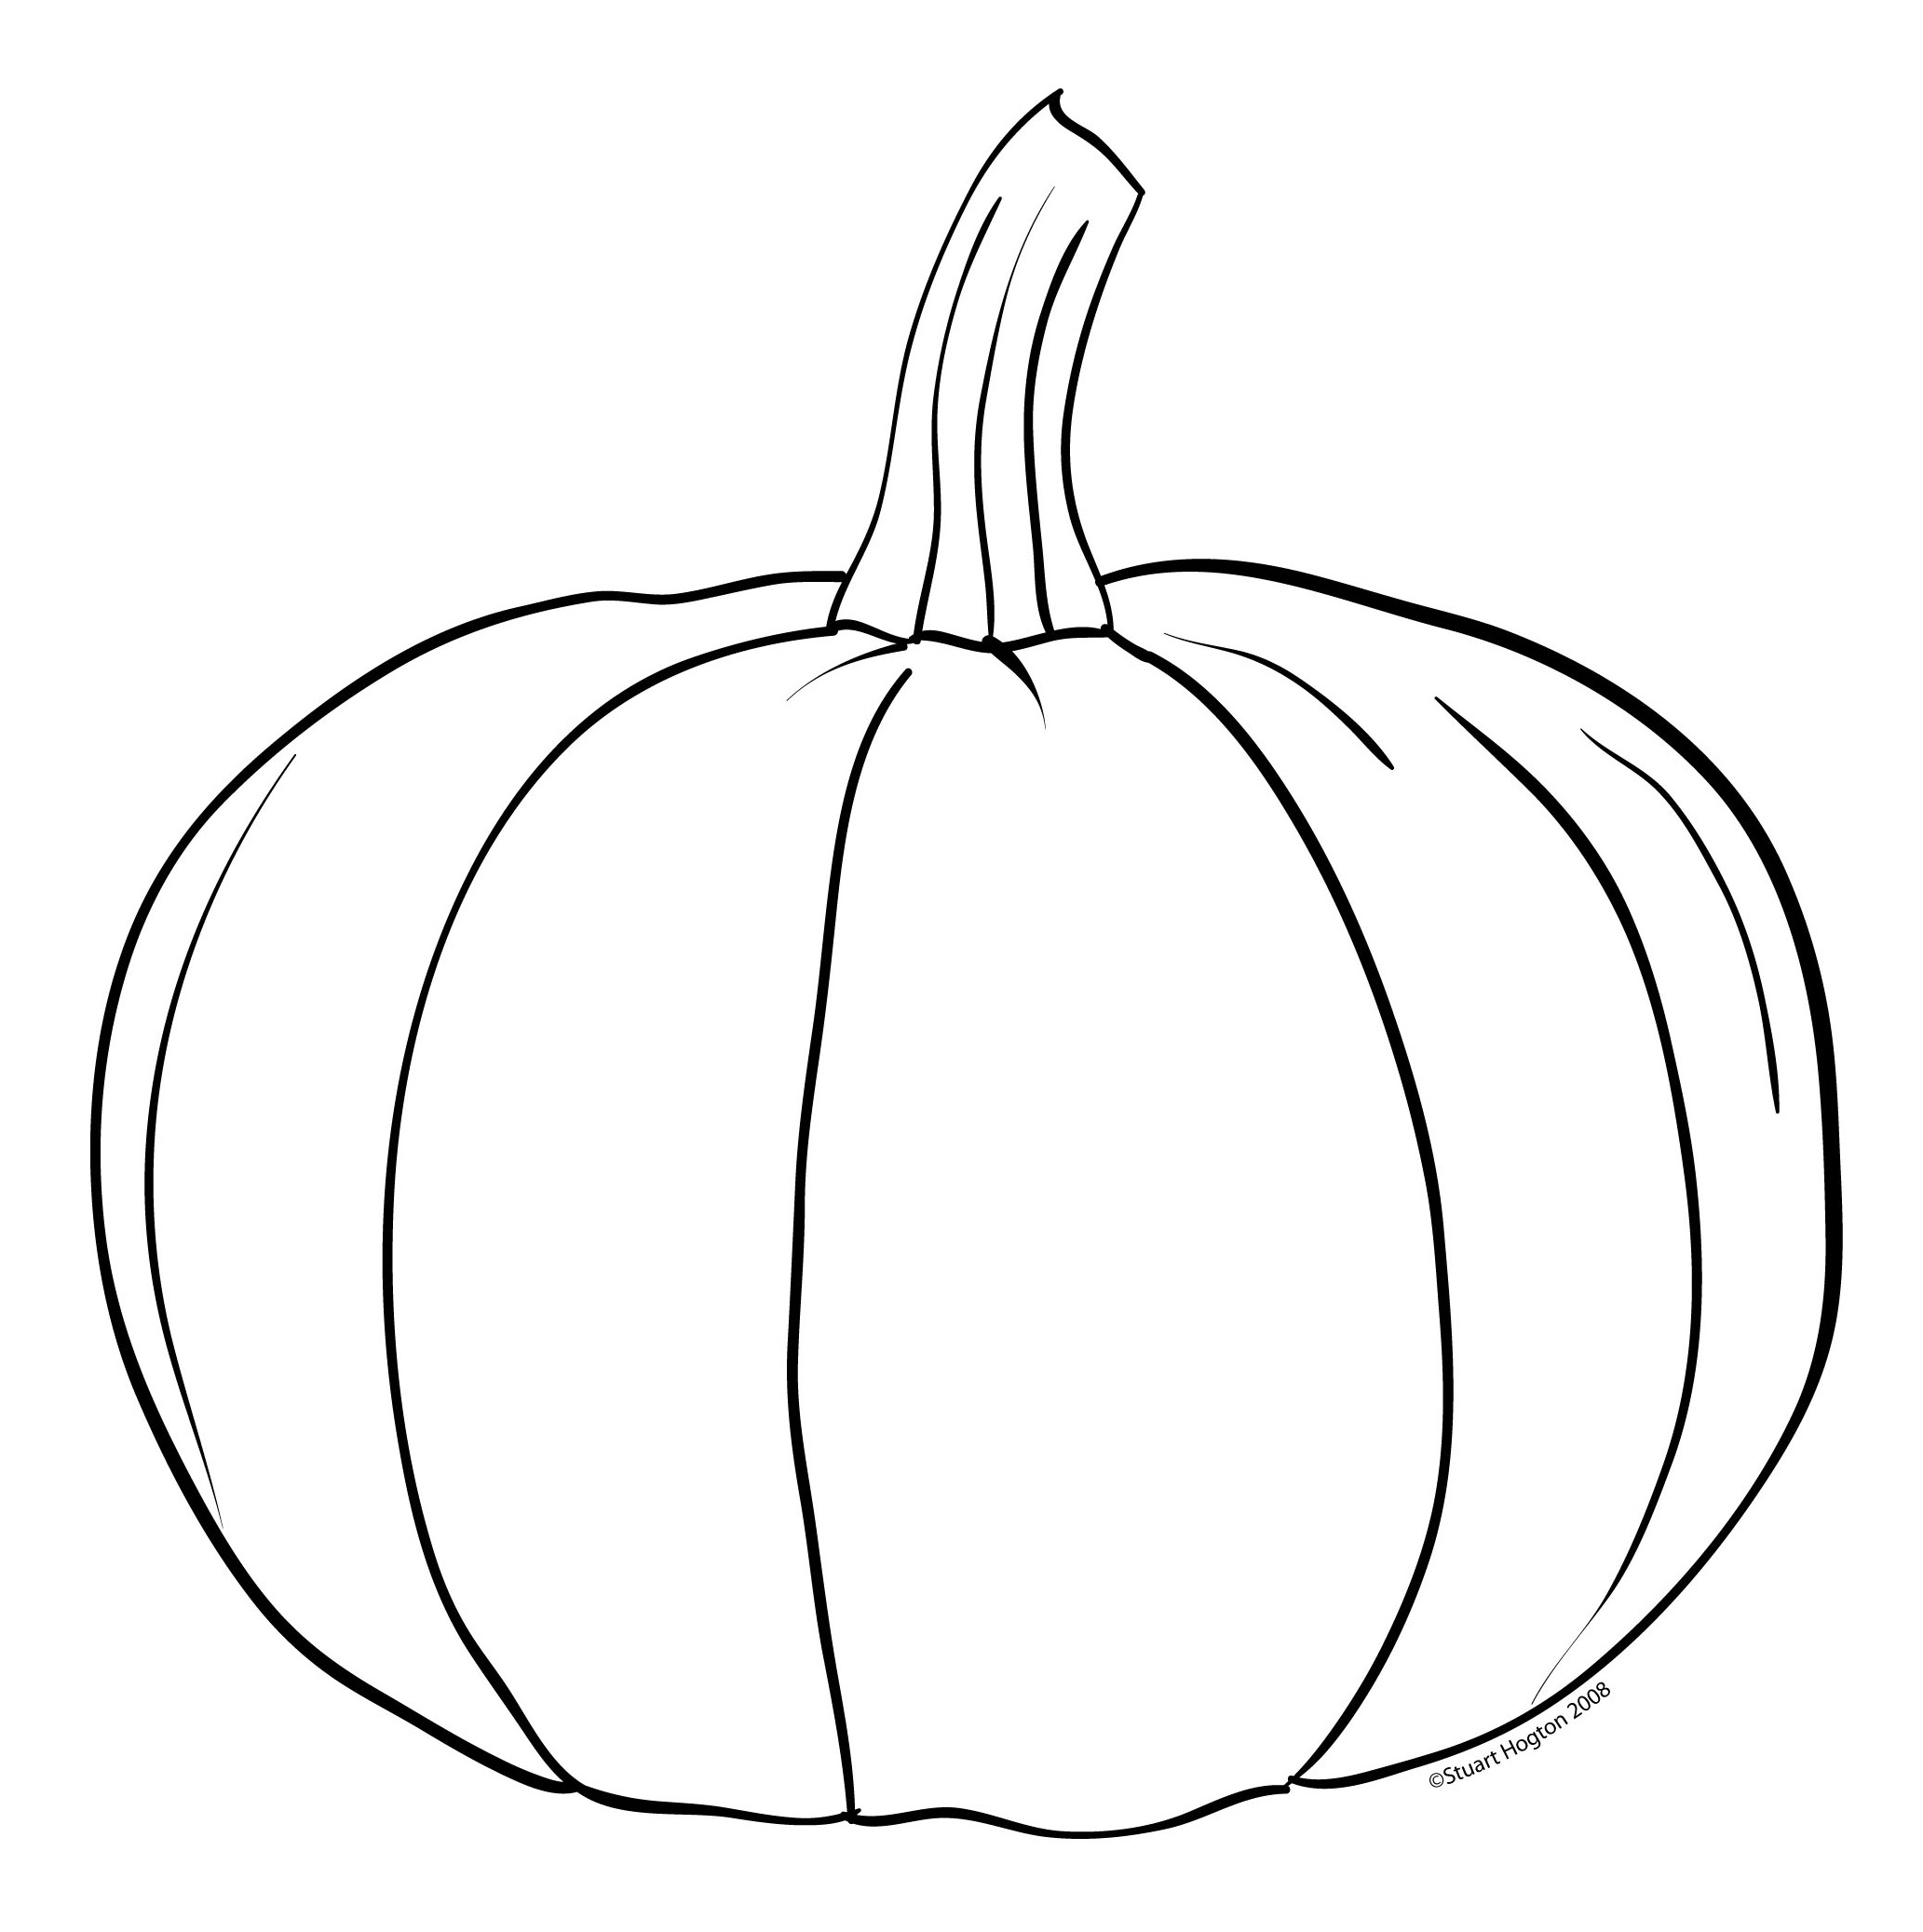 Pumpkin Black And White Pumpkin Clipart Black And White 8 in.